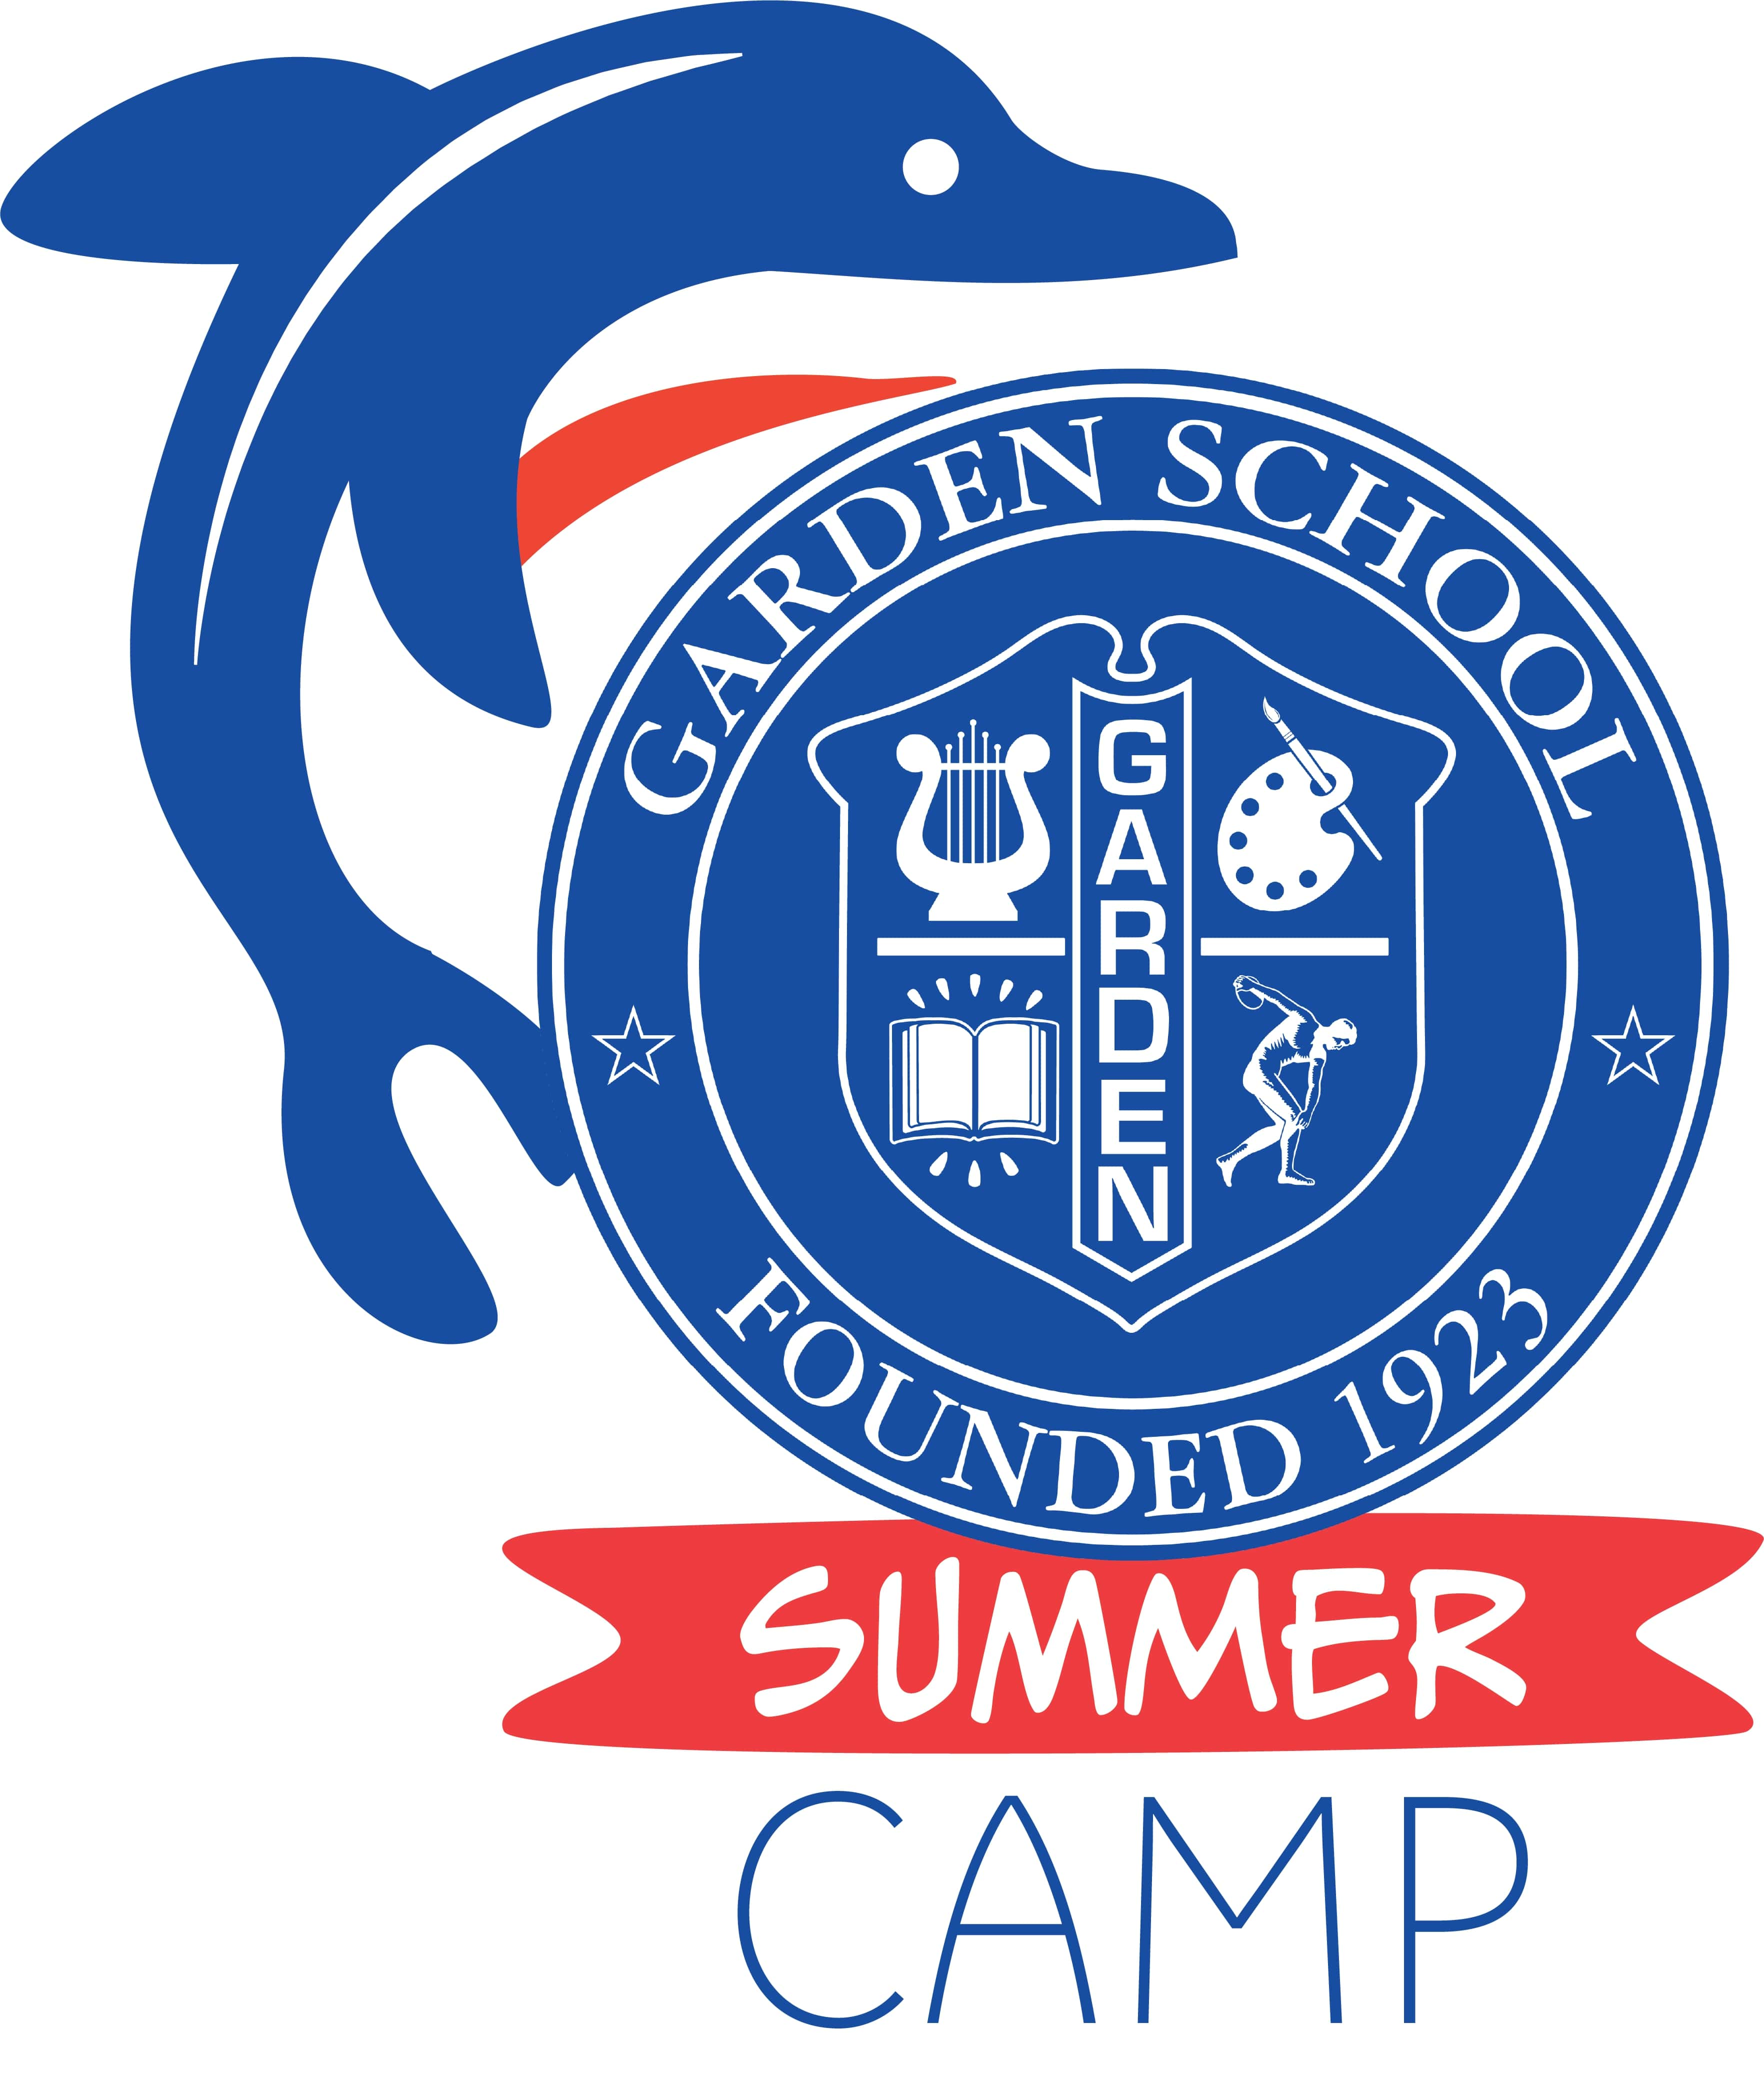 Garden School Summer Camp